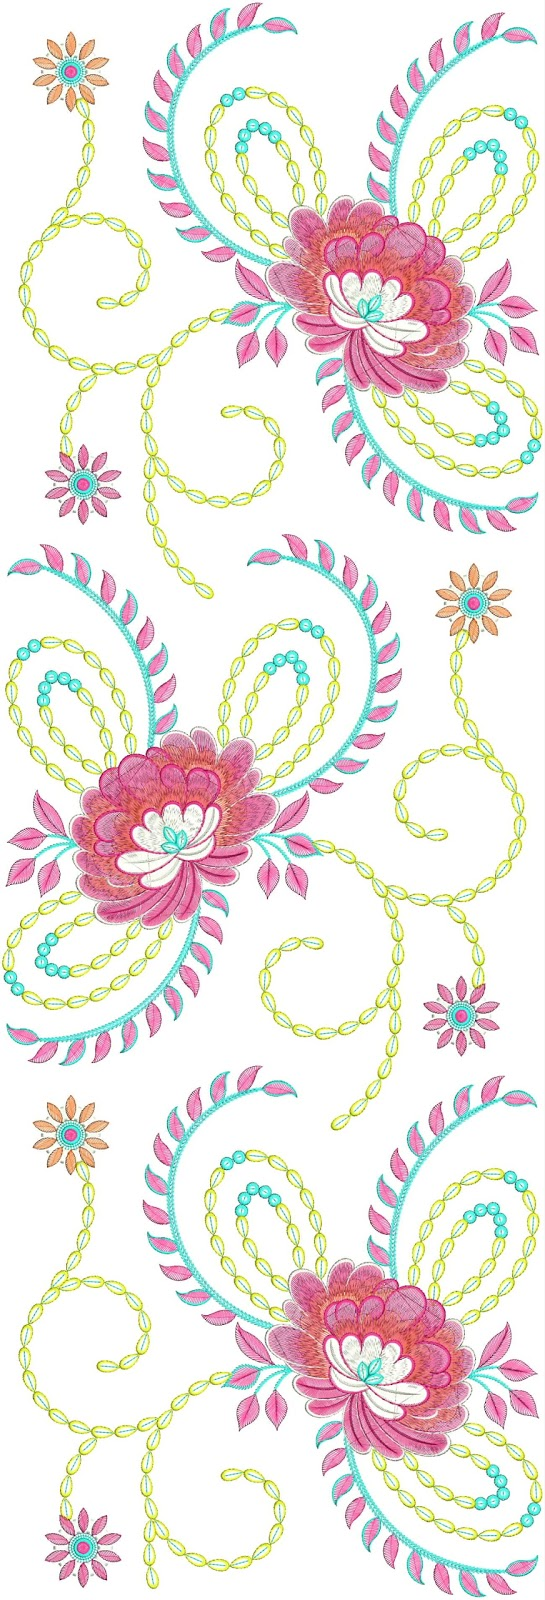 Mirror Work Floral Embroidery Designs  Embdesigntube